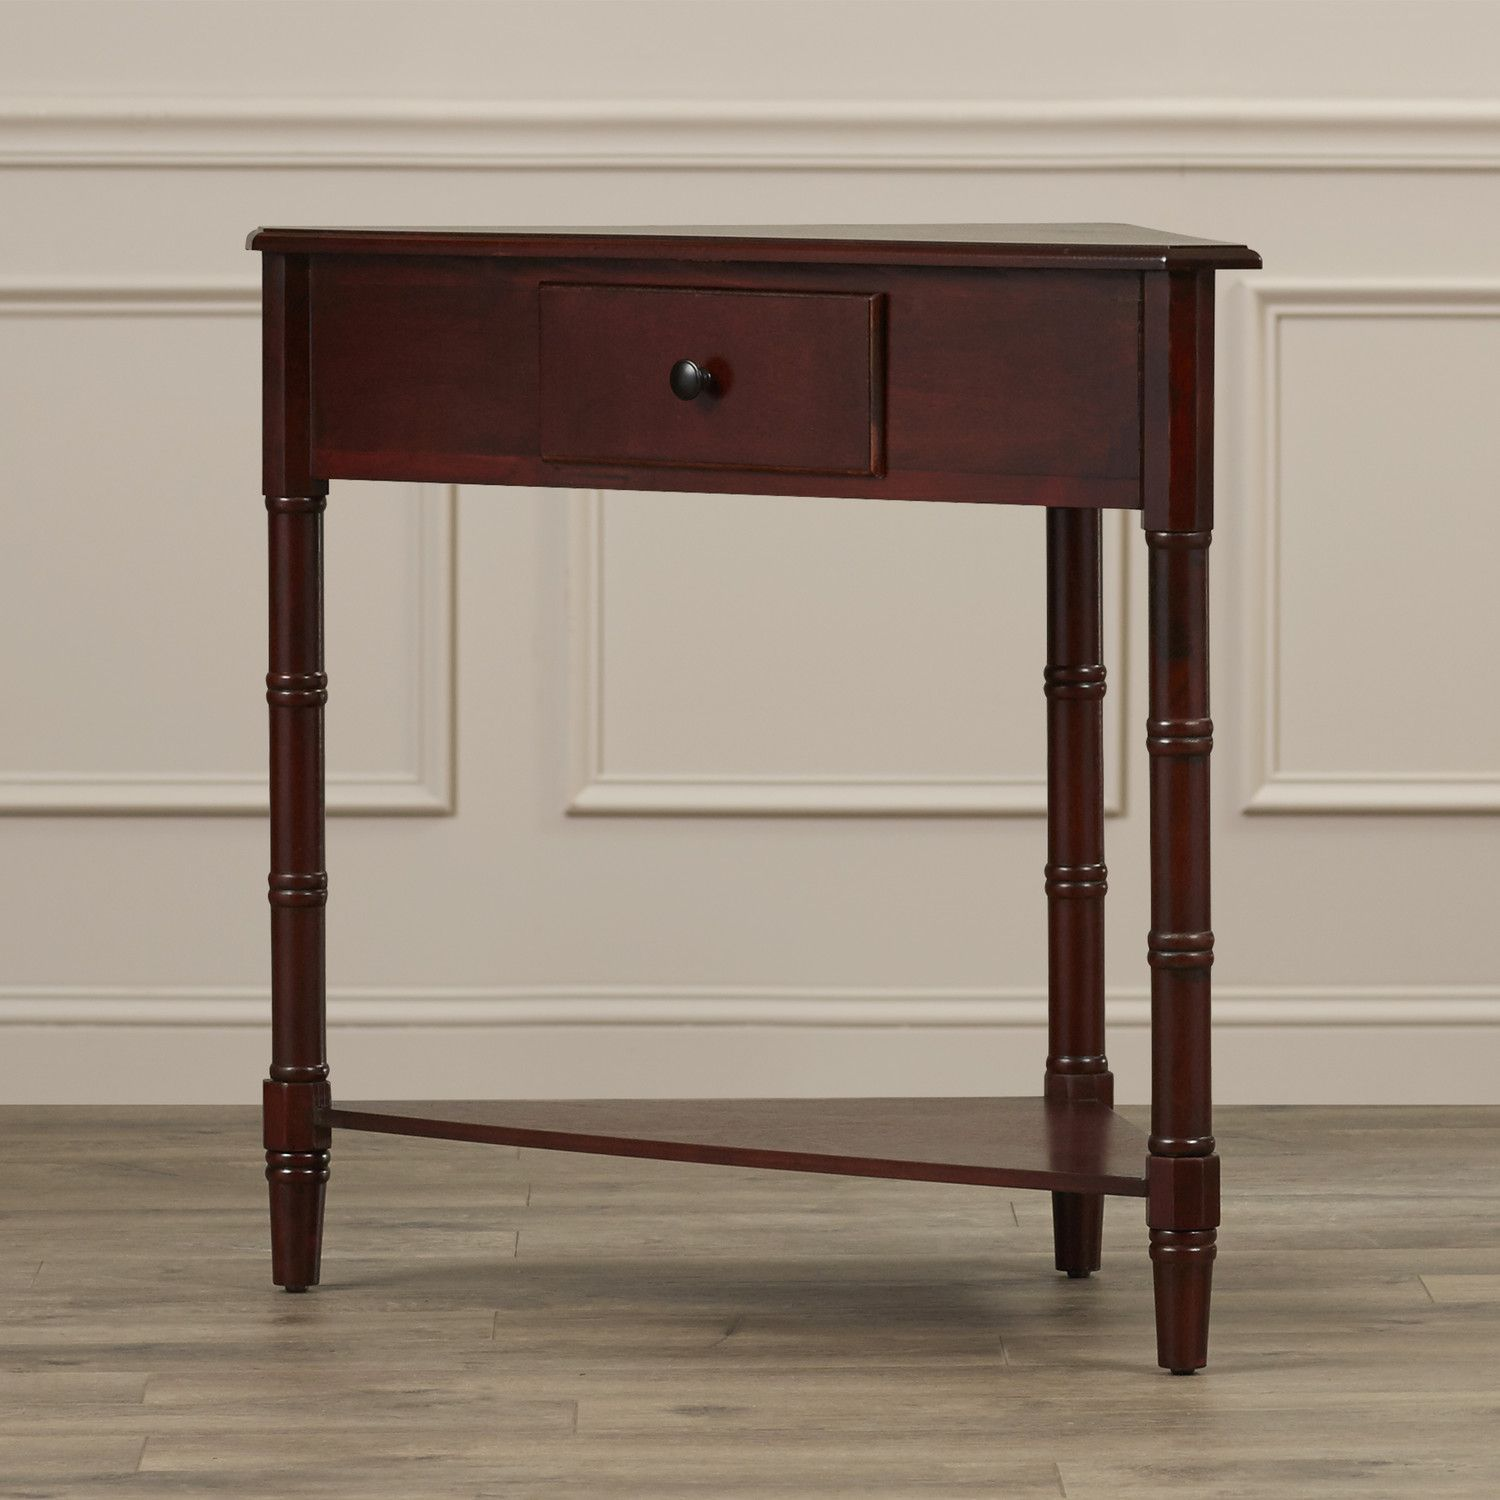 Wayfair For Corner End Tables To Match Every Style And Budget Enjoy Free Shipping